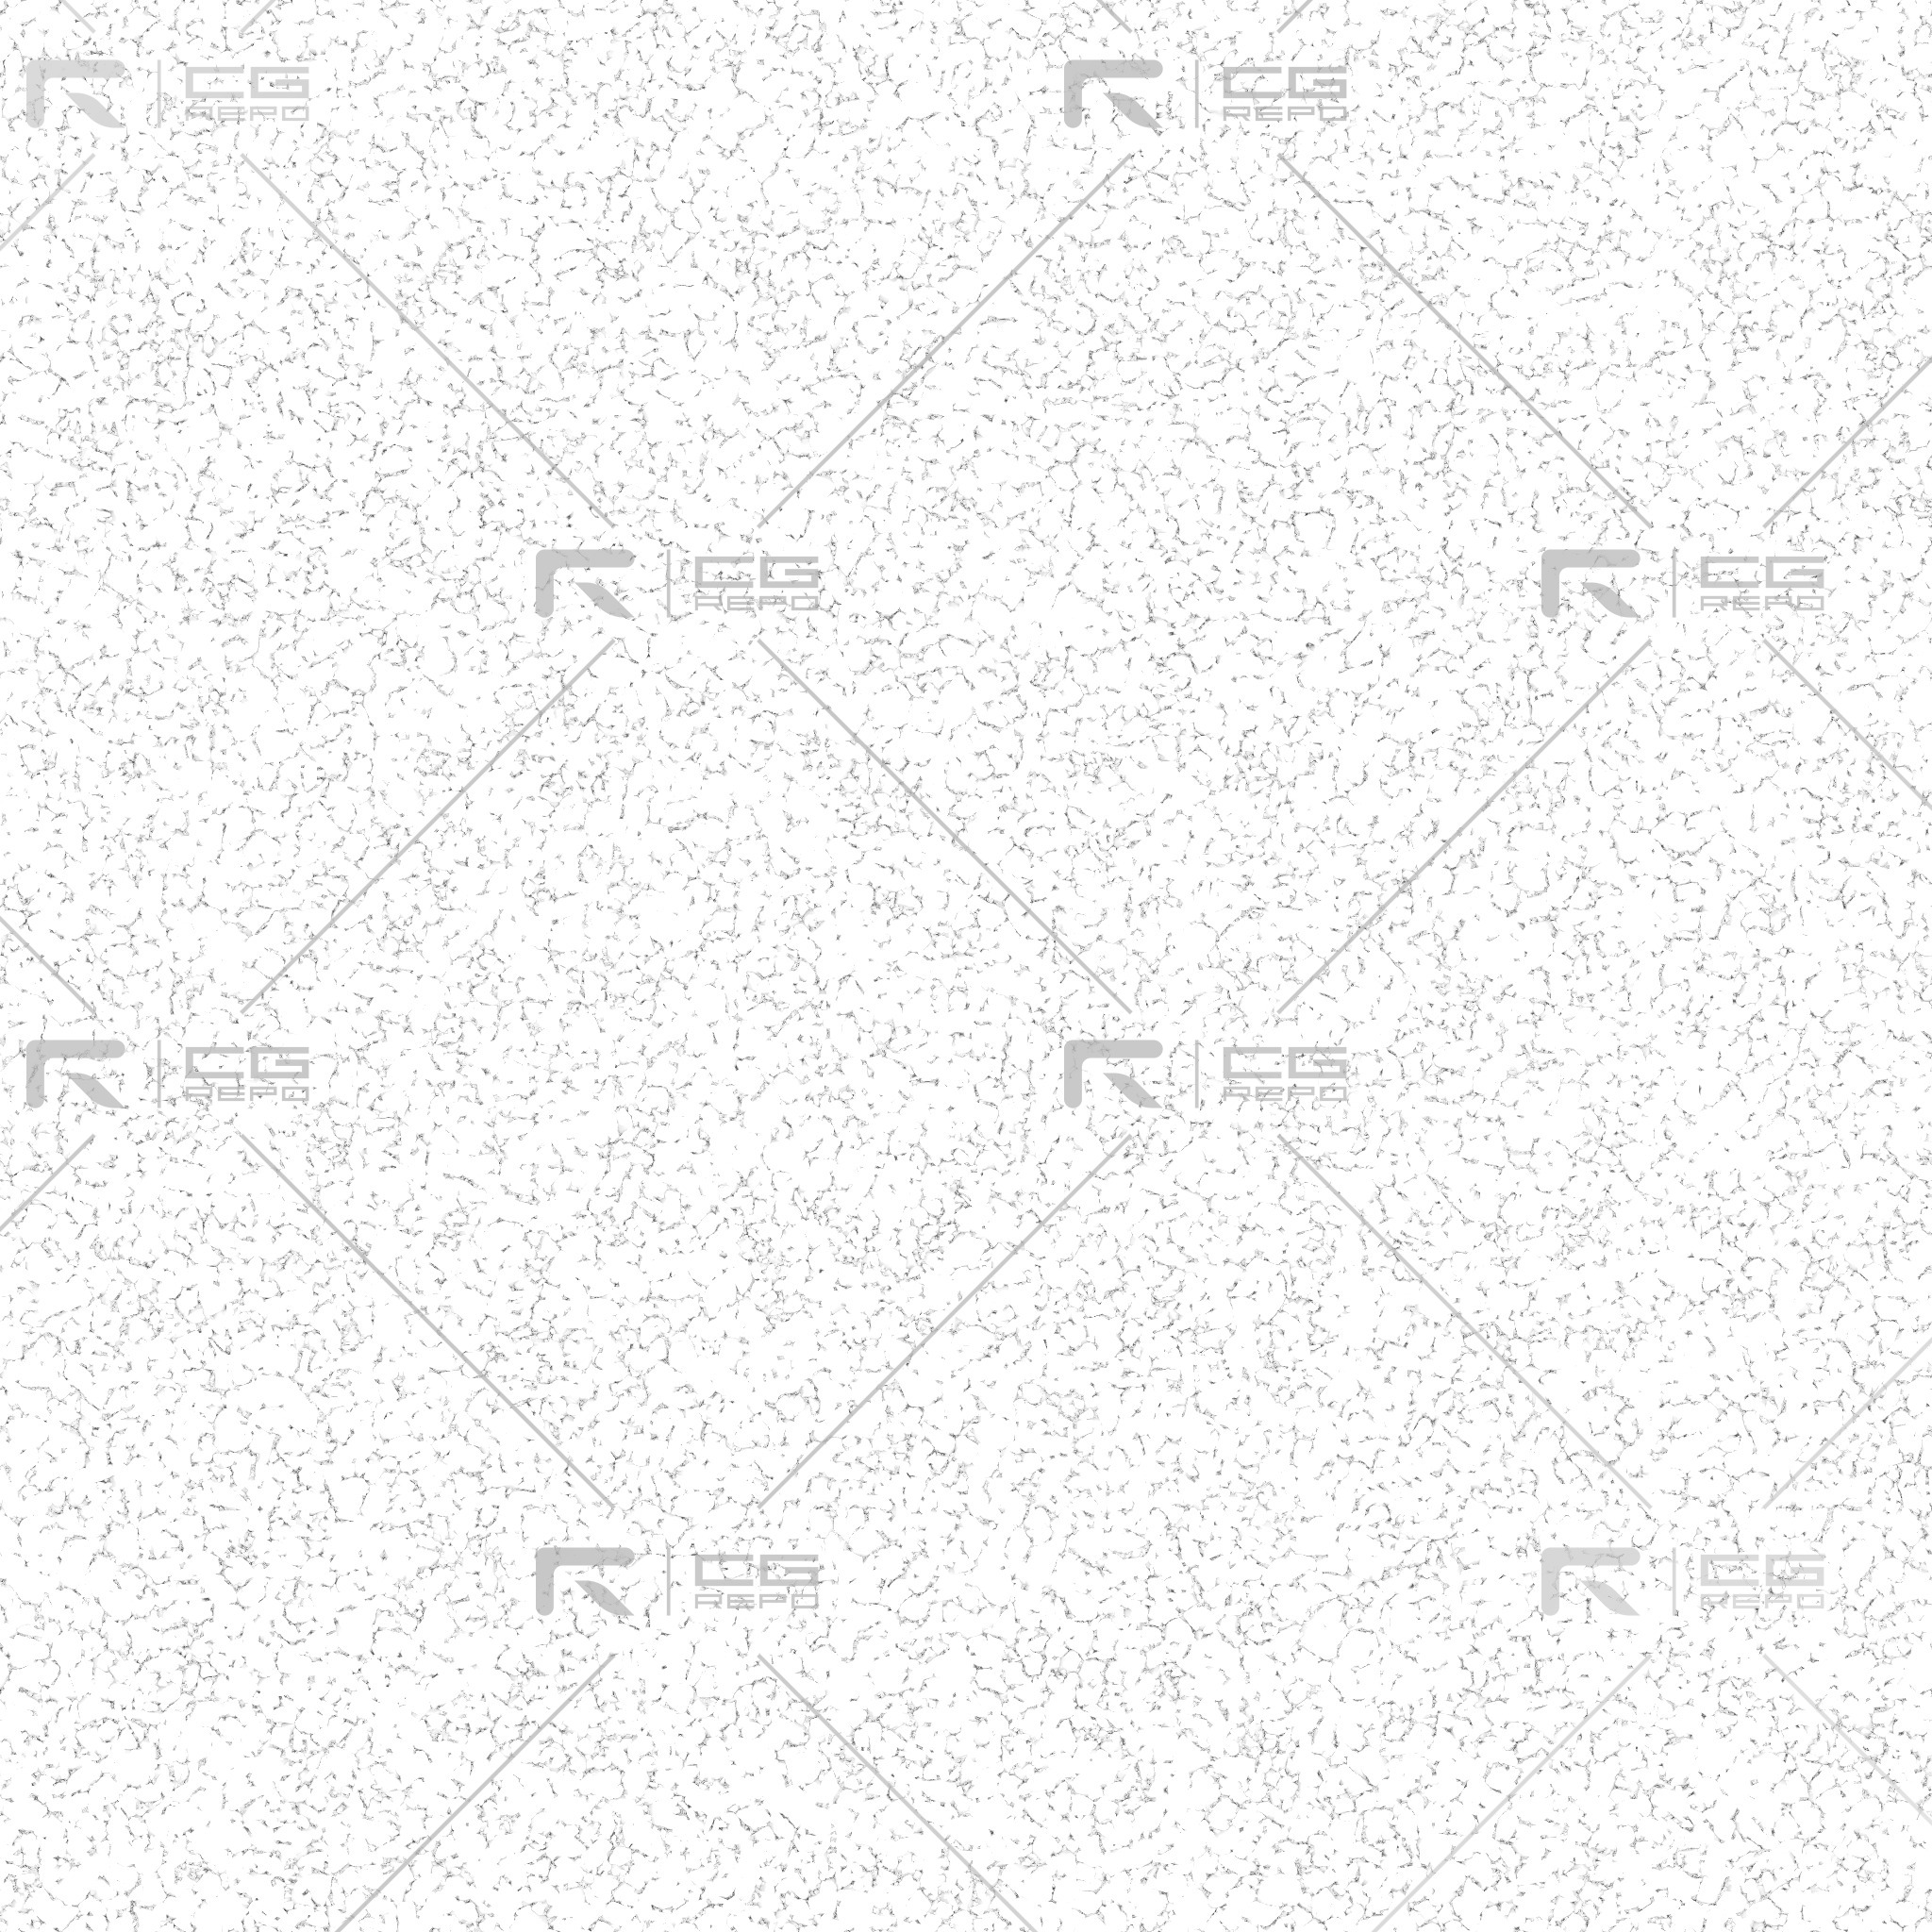 Terrazzo B Ambient Occlusion Texture